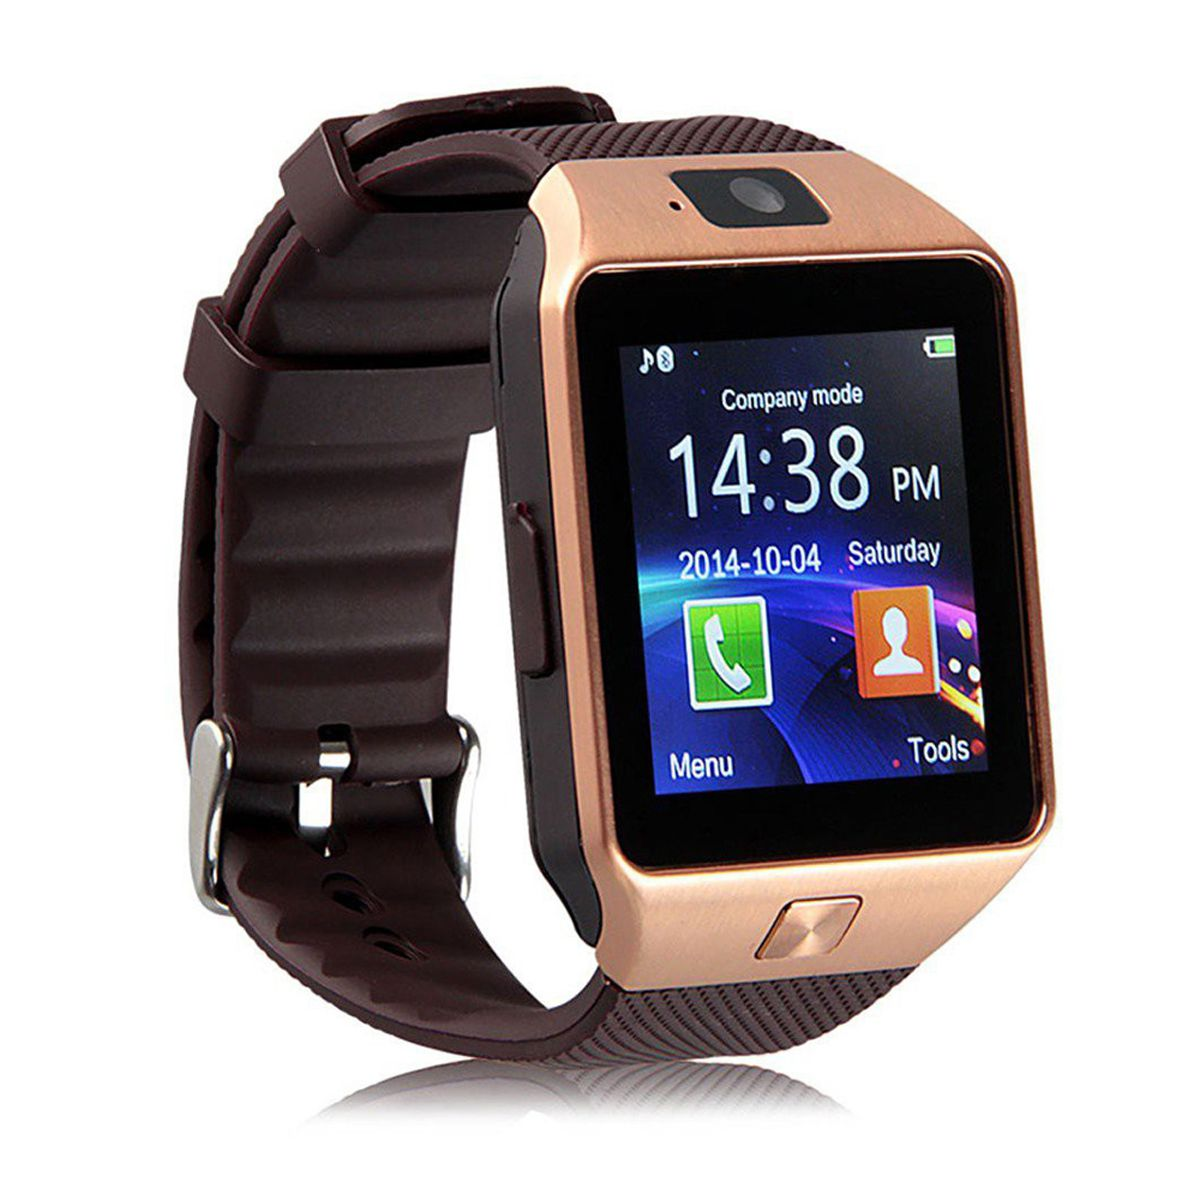 Over Tech Smartwatch Suited Philips Xenium W6610 Dz09 Golden Smart Watches